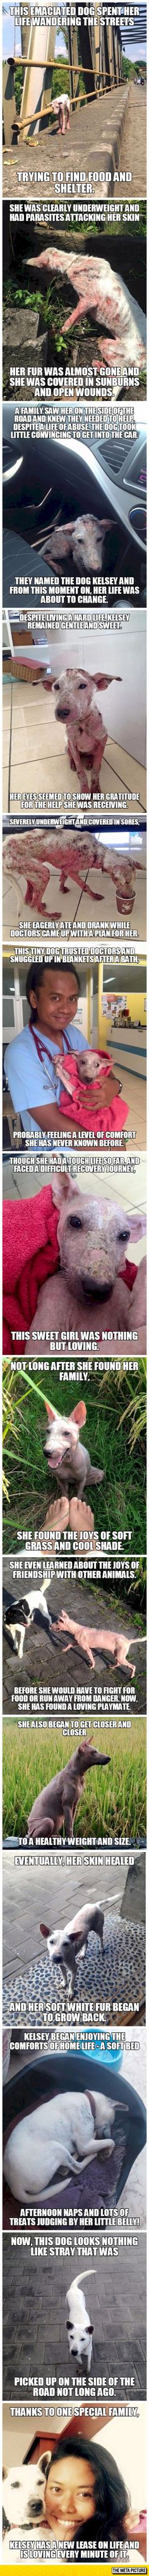 A Story of a Stray Dog… Faith in Humanity Restored *CRYING SO MUCH TEARS* BRAVISSIMO.